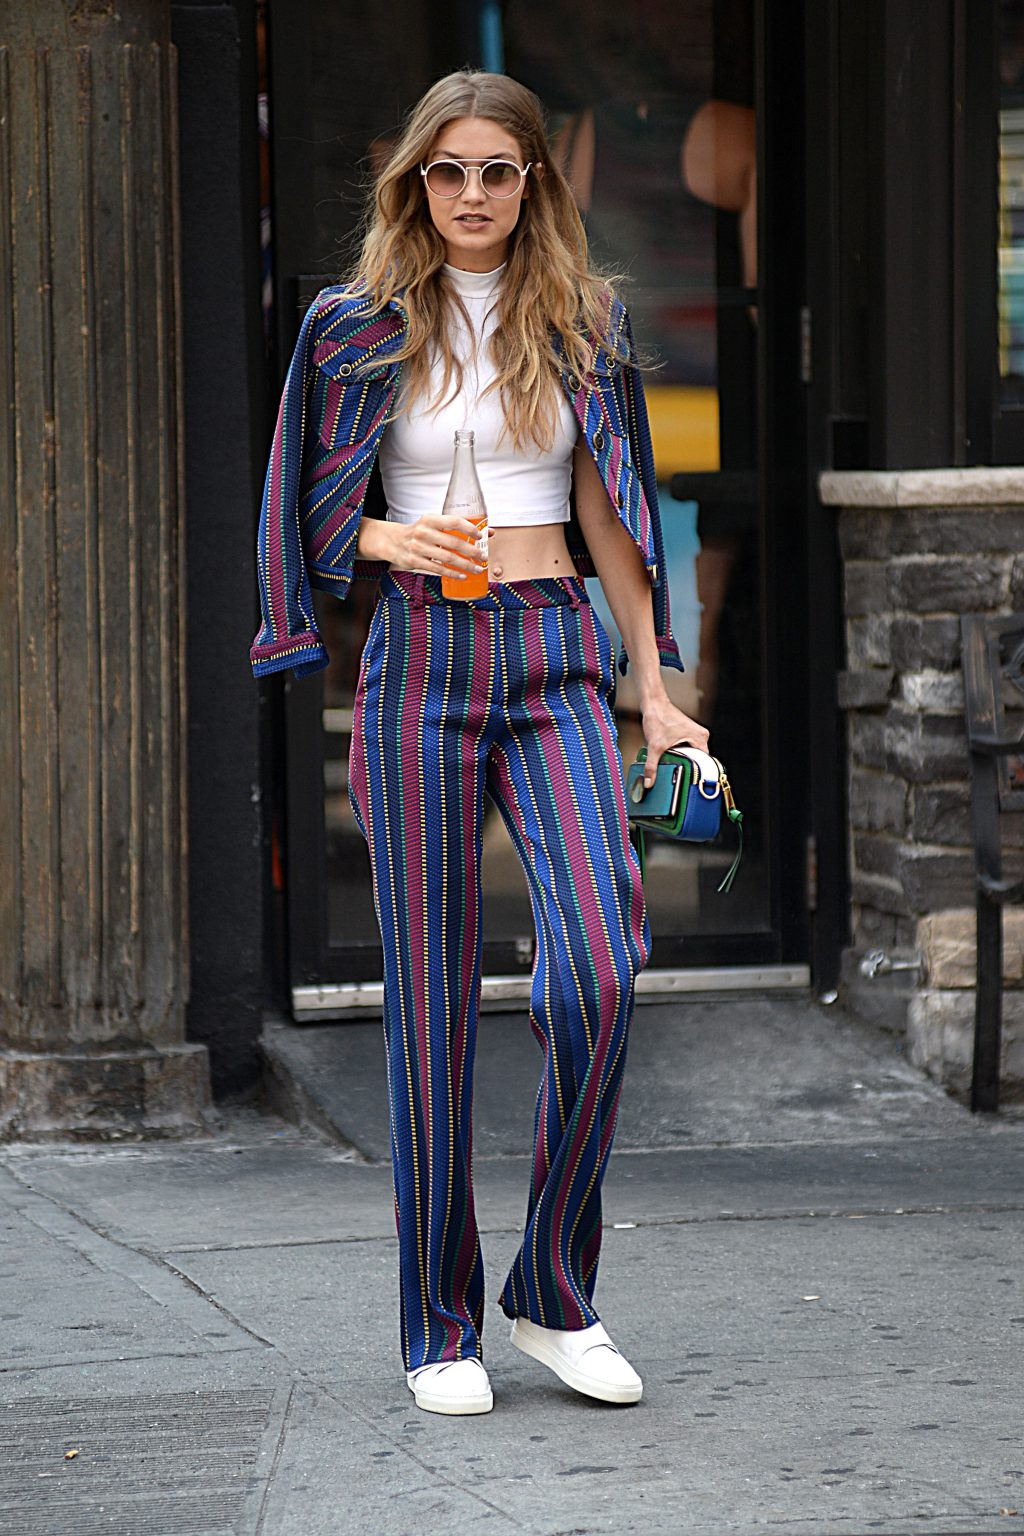 Gigi Hadid wears a 70's fashion inspired out fit stripes